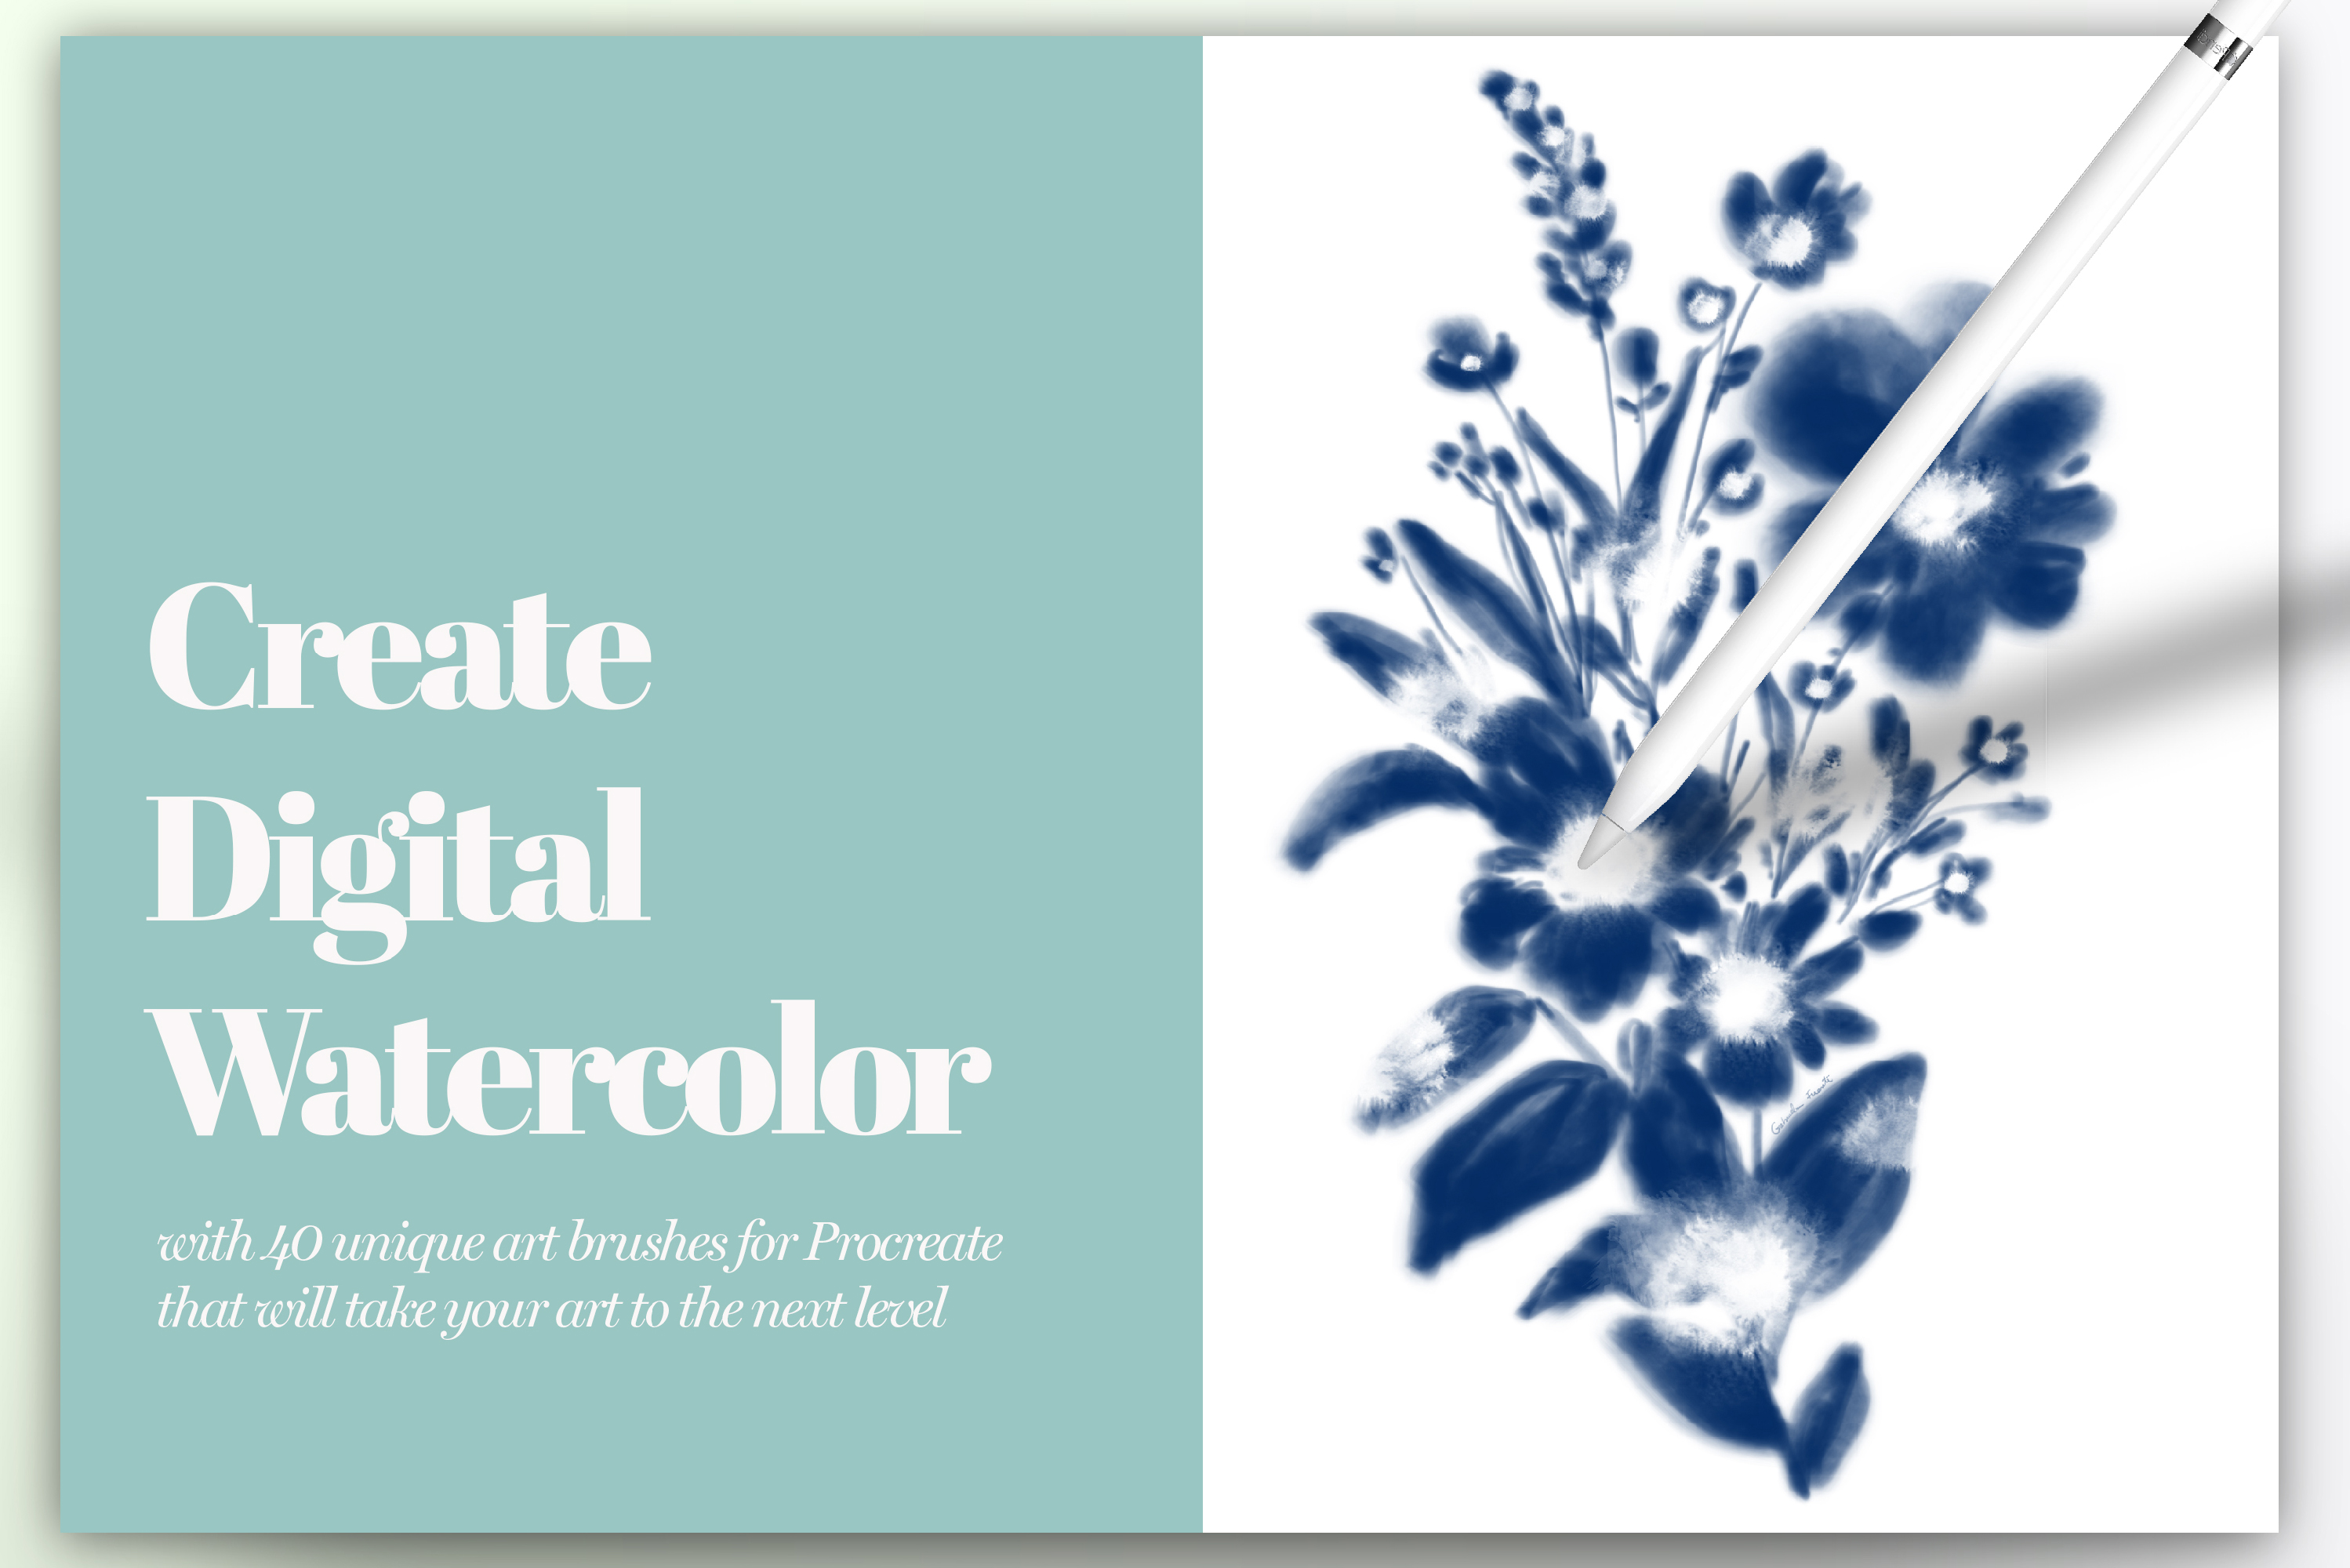 40 Artistic Painting Brushes for Procreate example image 2